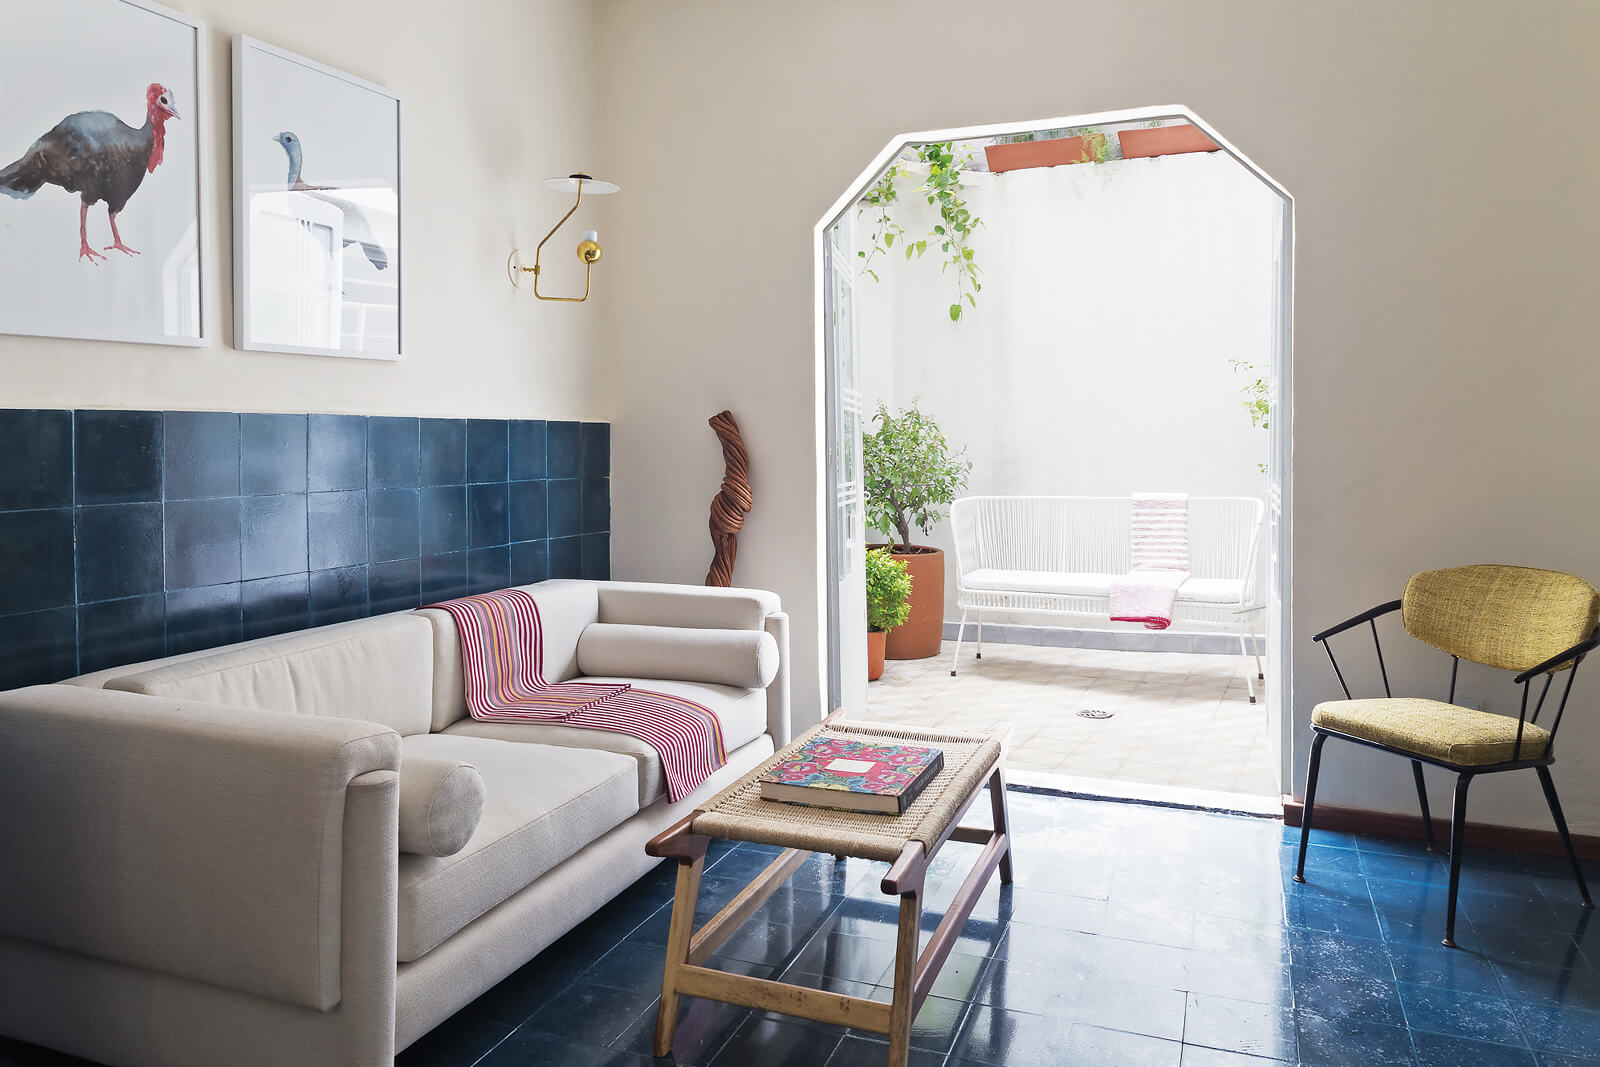 Culiacan 12, Condesa, Mexico City | vacation homes for rent